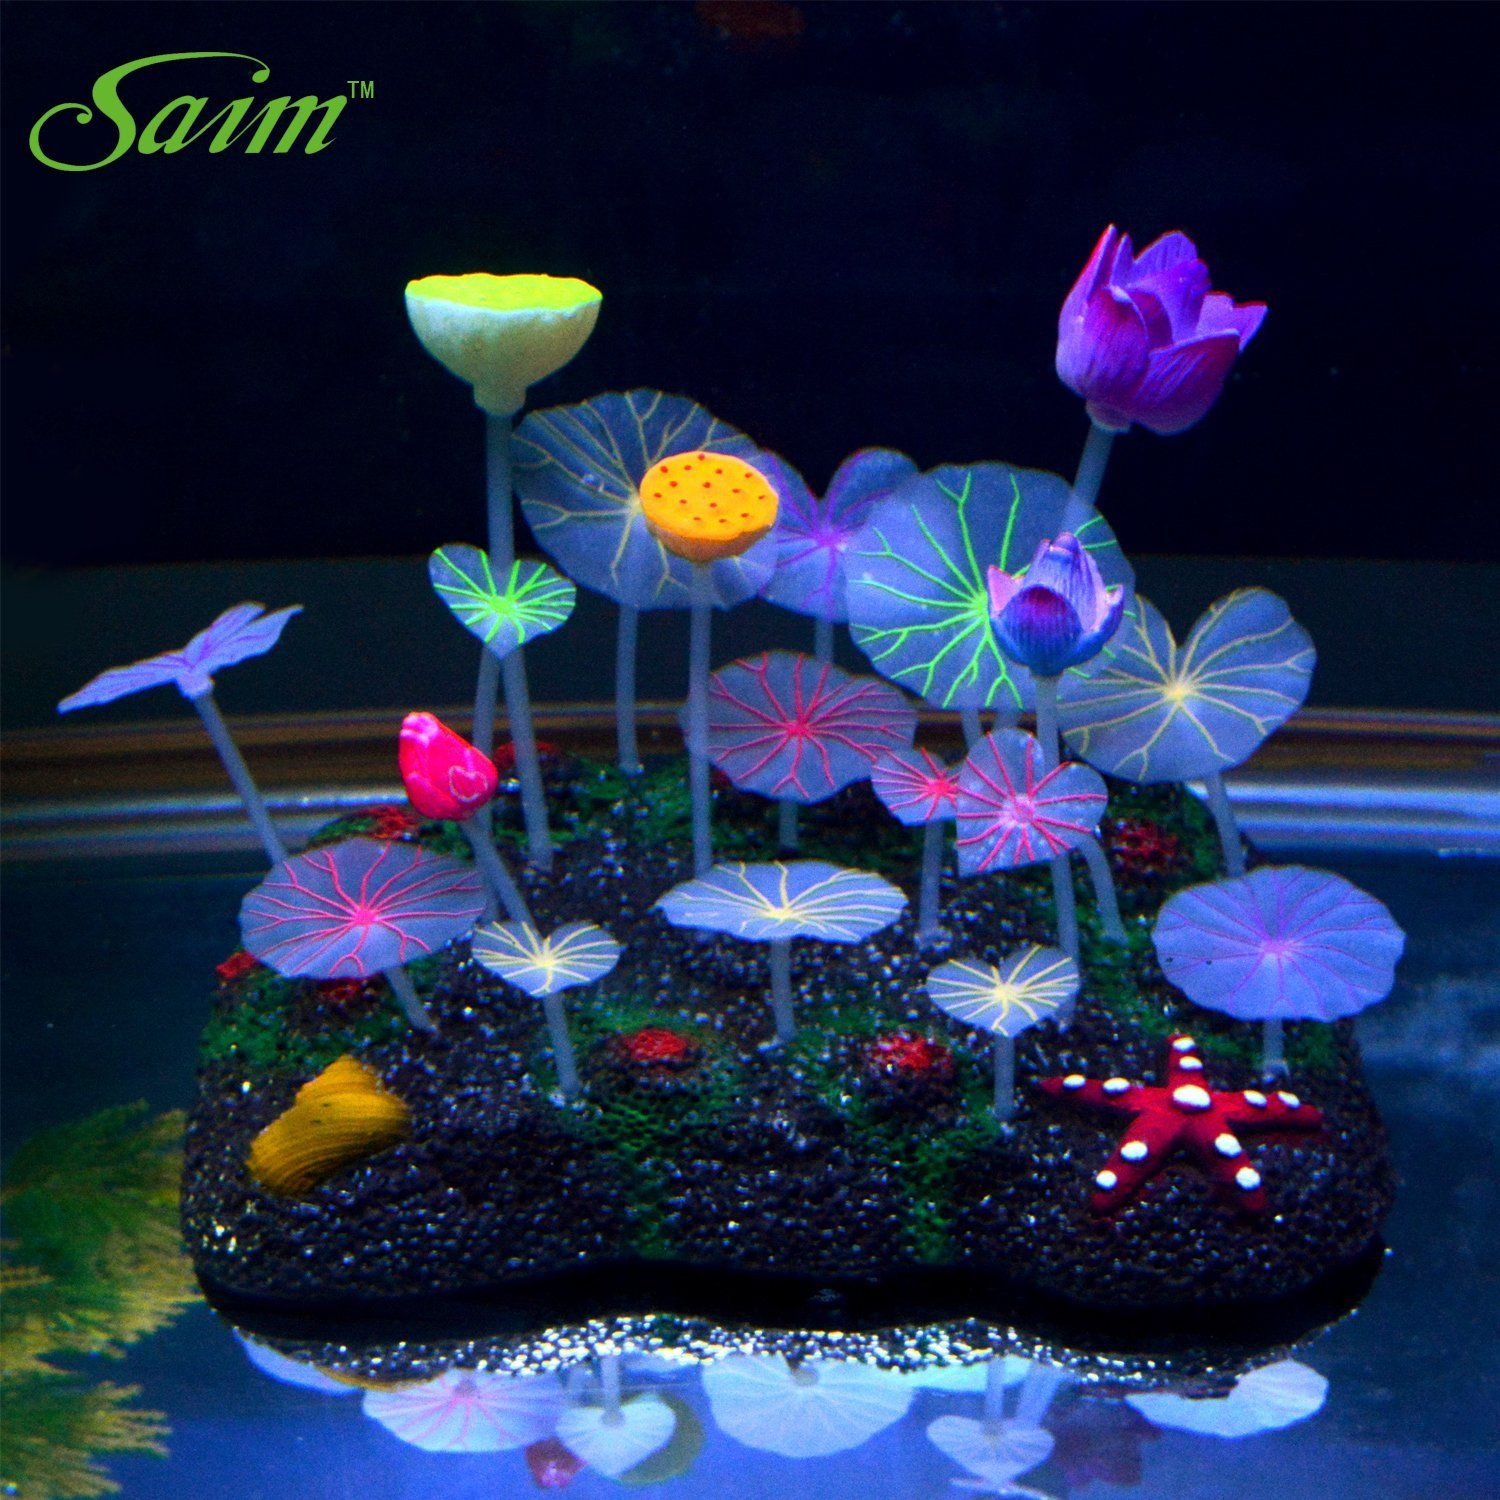 Aquarium fish tank decorations - Find This Pin And More On Glofish Tank